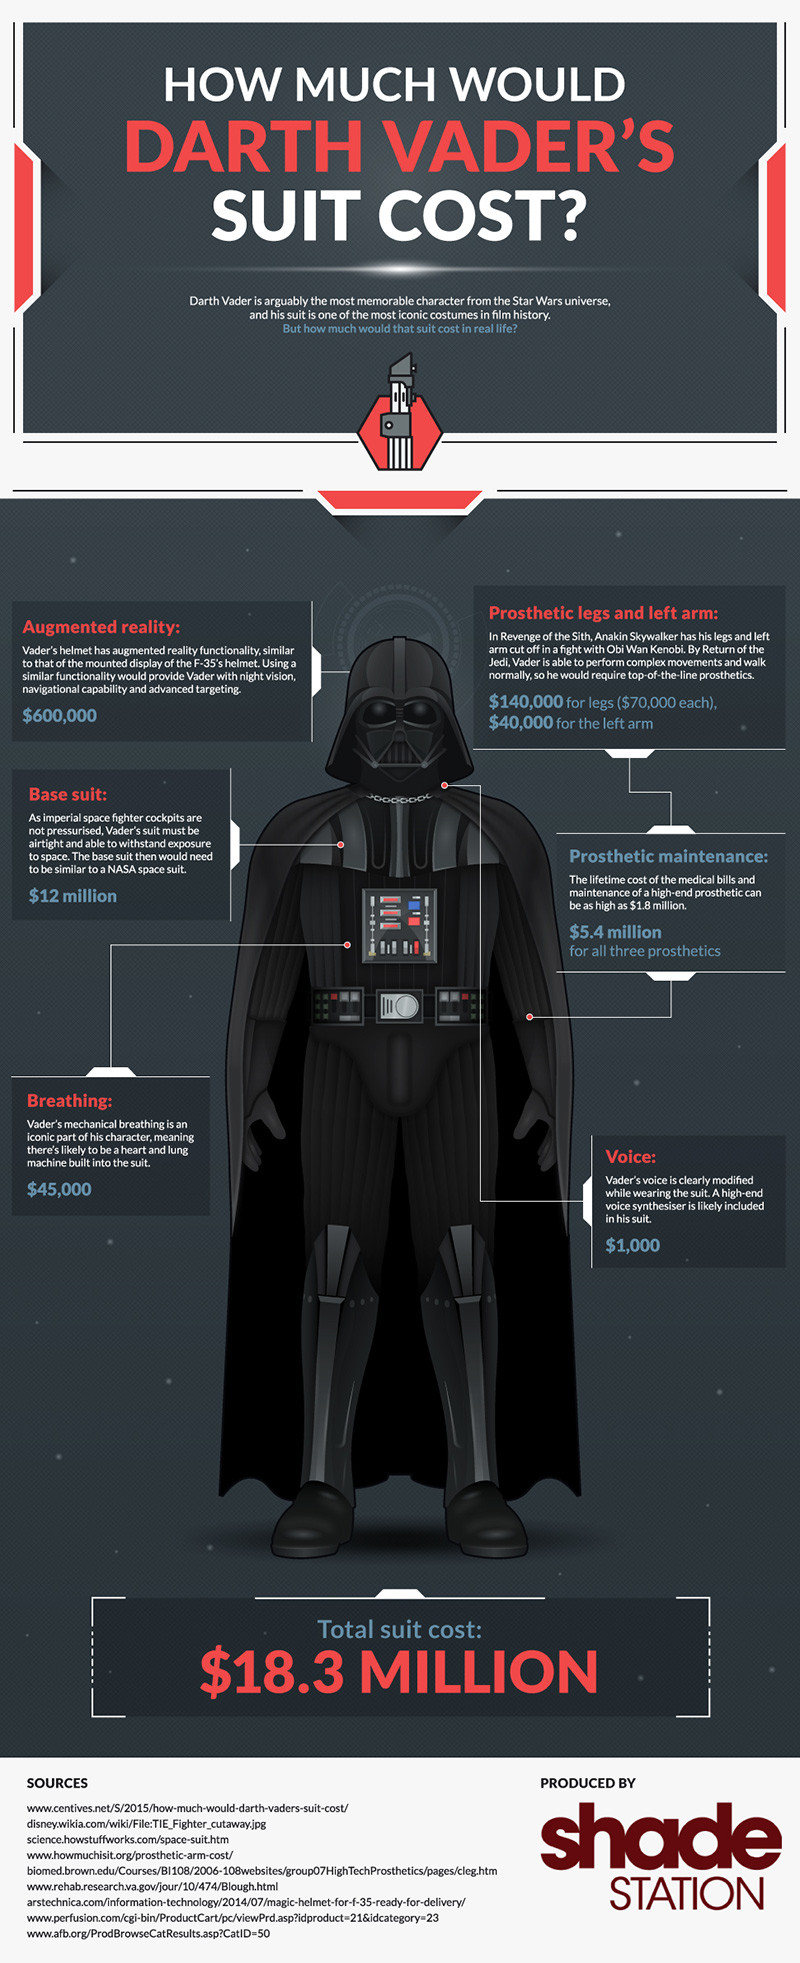 Darth Vader Suit Costs